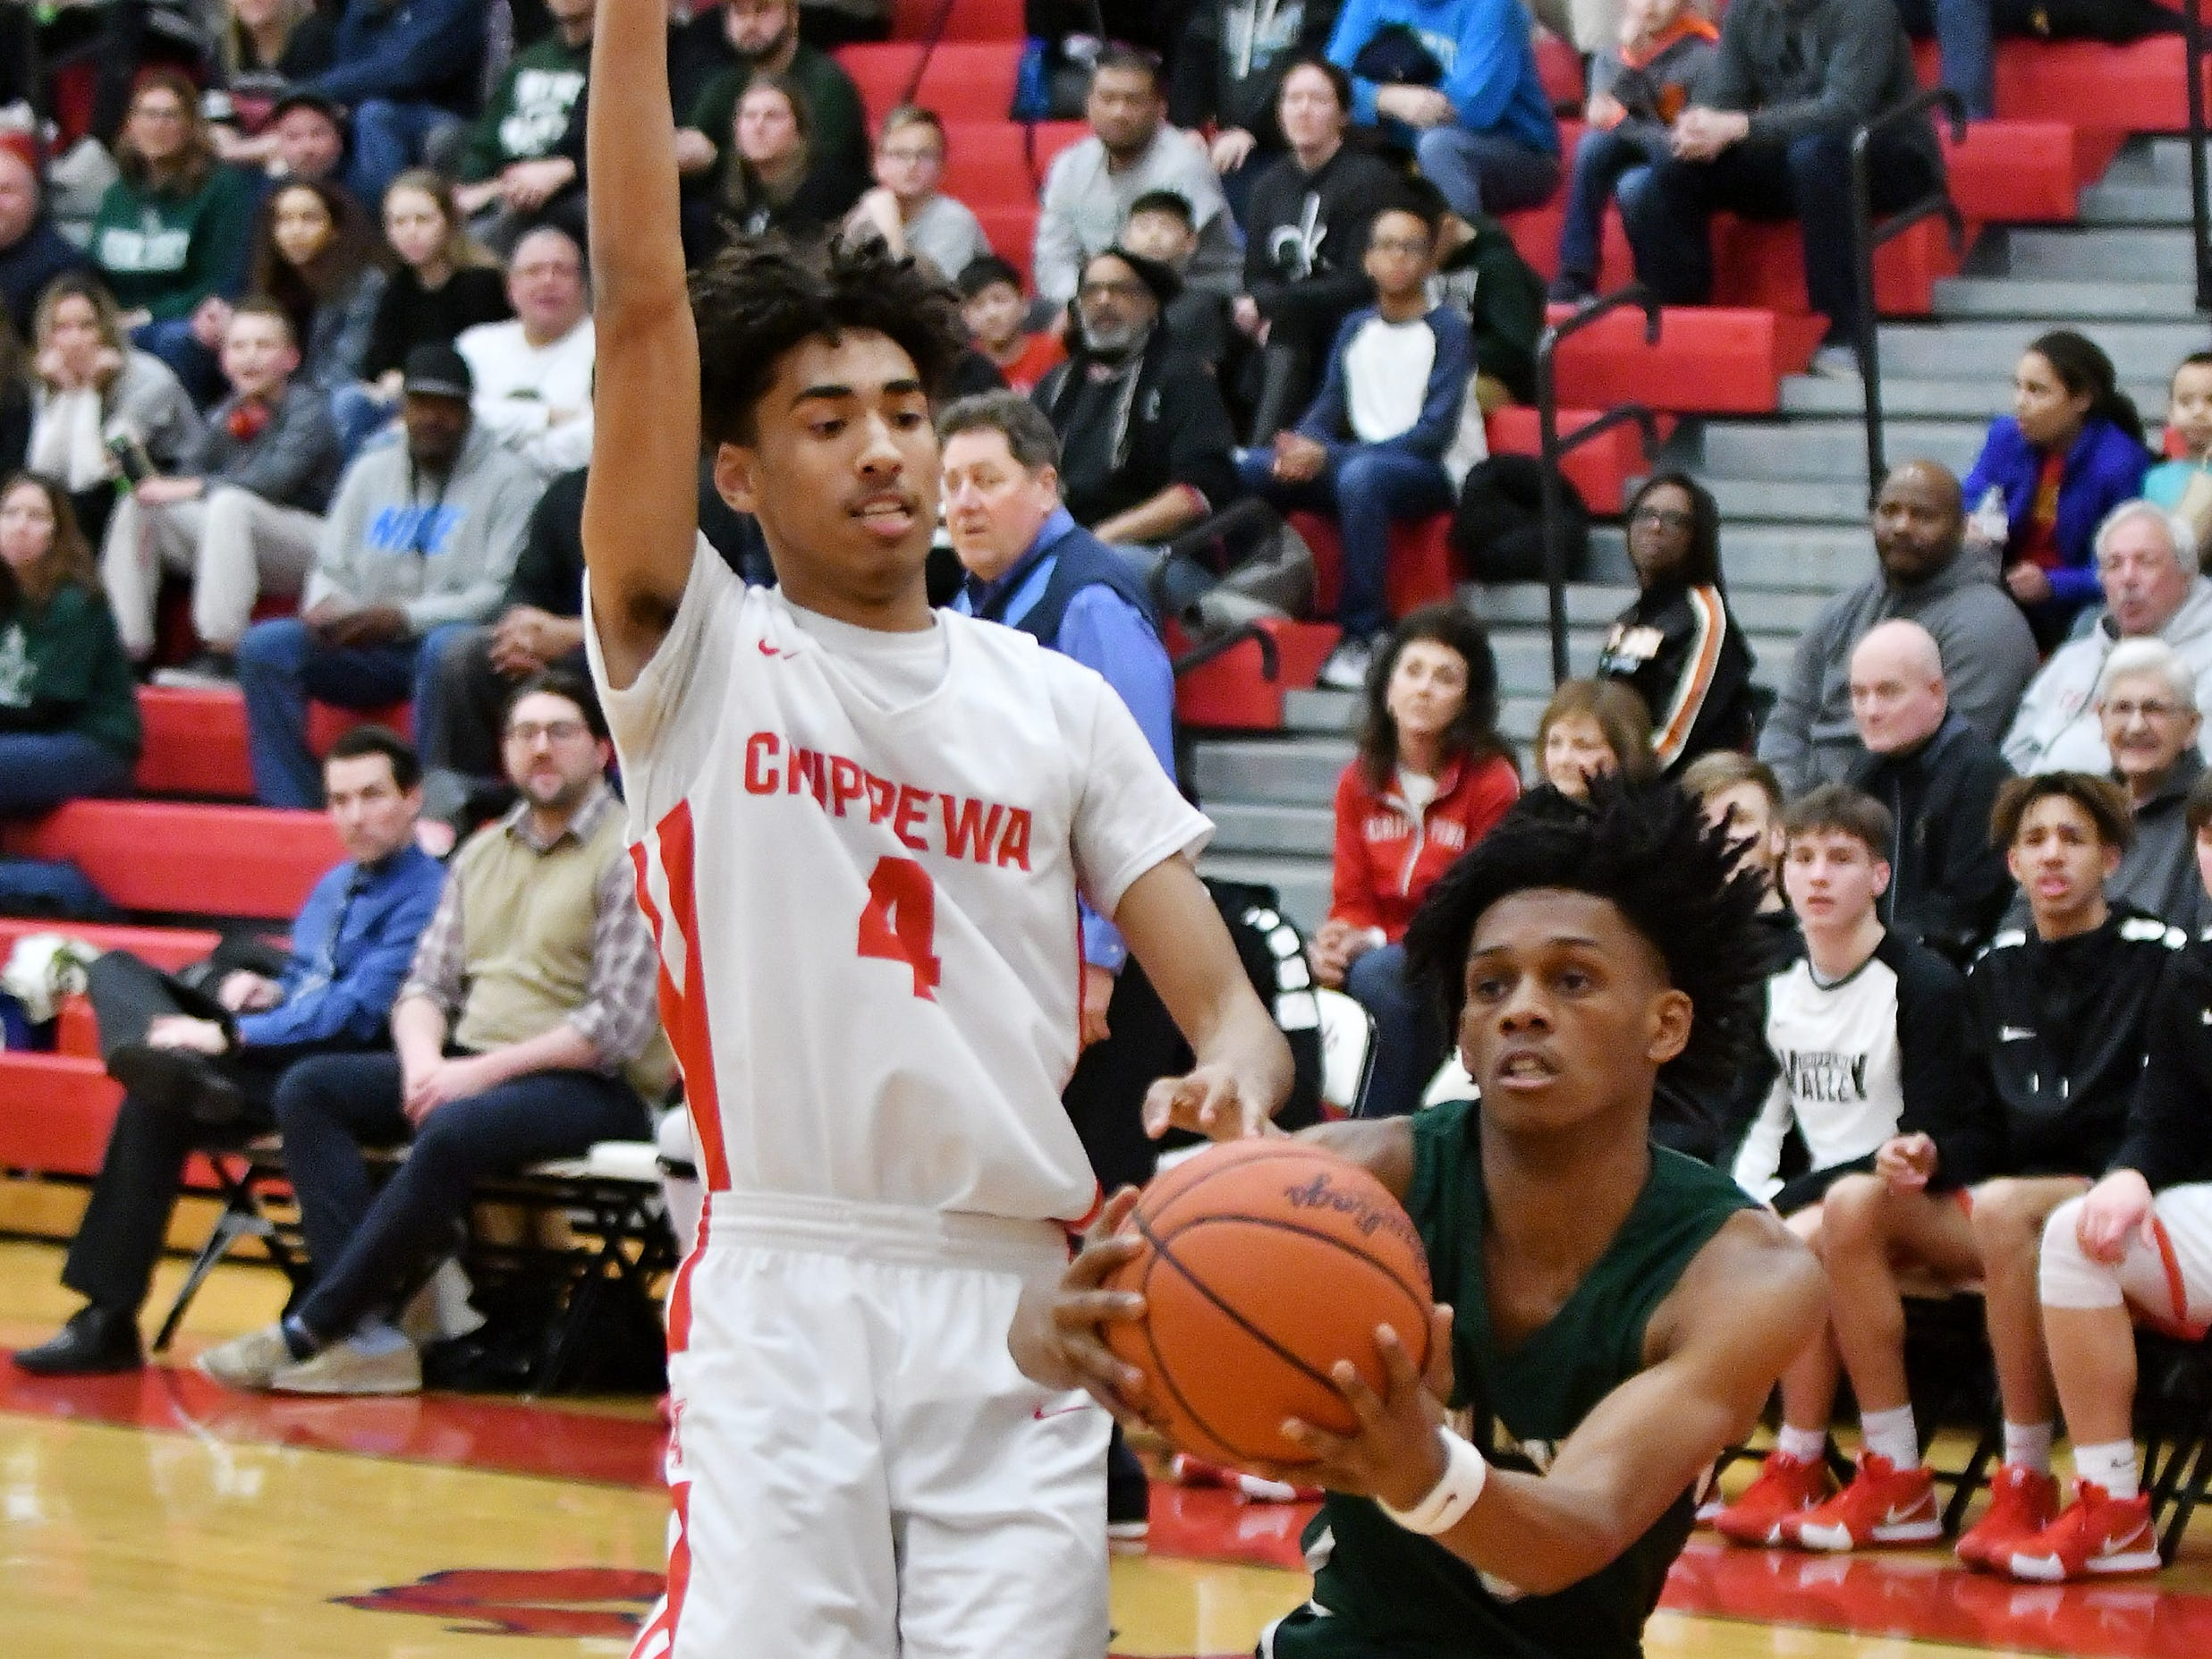 Chippewa Valley's Jon Bolden (4) guards New Haven's Ronald Jeffrey III in the first half.